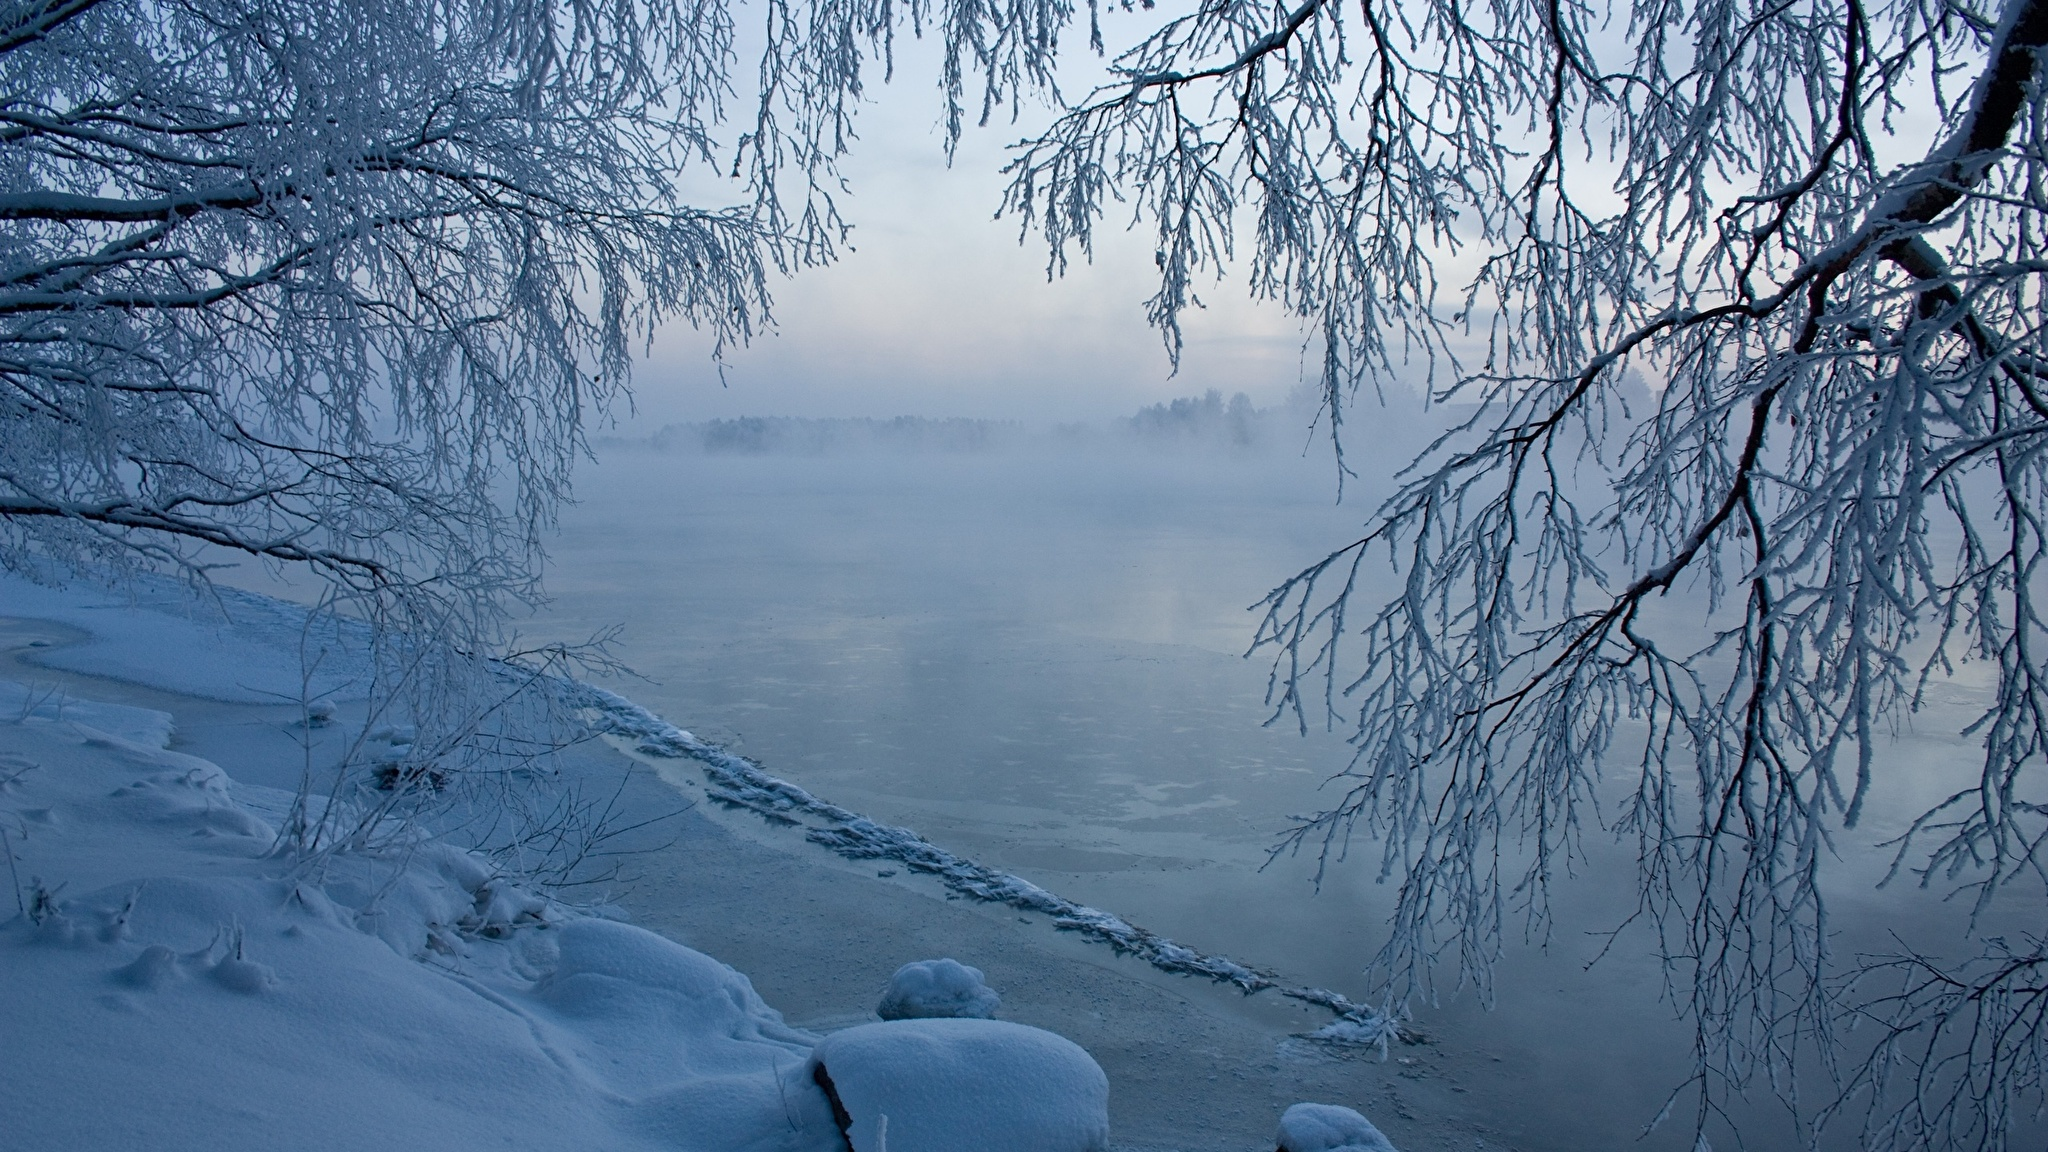 речка зима снег the river winter snow без регистрации